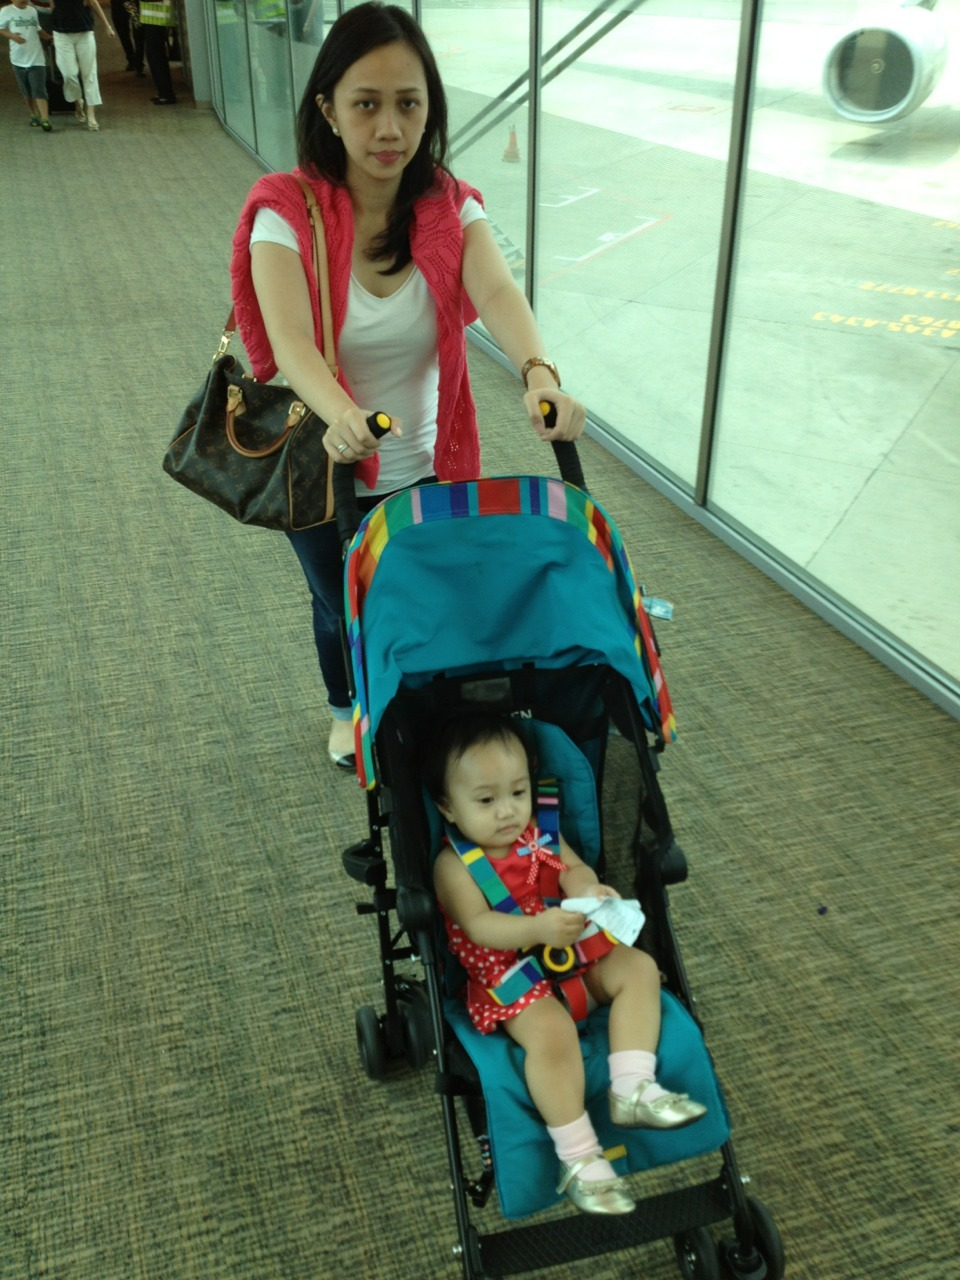 Singapore Trip 2013. Day 1.  Our first family trip! We chose Singapore and pick the dates not long after your birthday, March 28 - April 1. We arrived in Changi airport in the afternoon and took the MRT to the hotel, luckly you enjoyed eating airplane foods. Afterwards we went to Orchard for dinner at 313 Sommerset and Mom did a little shopping.